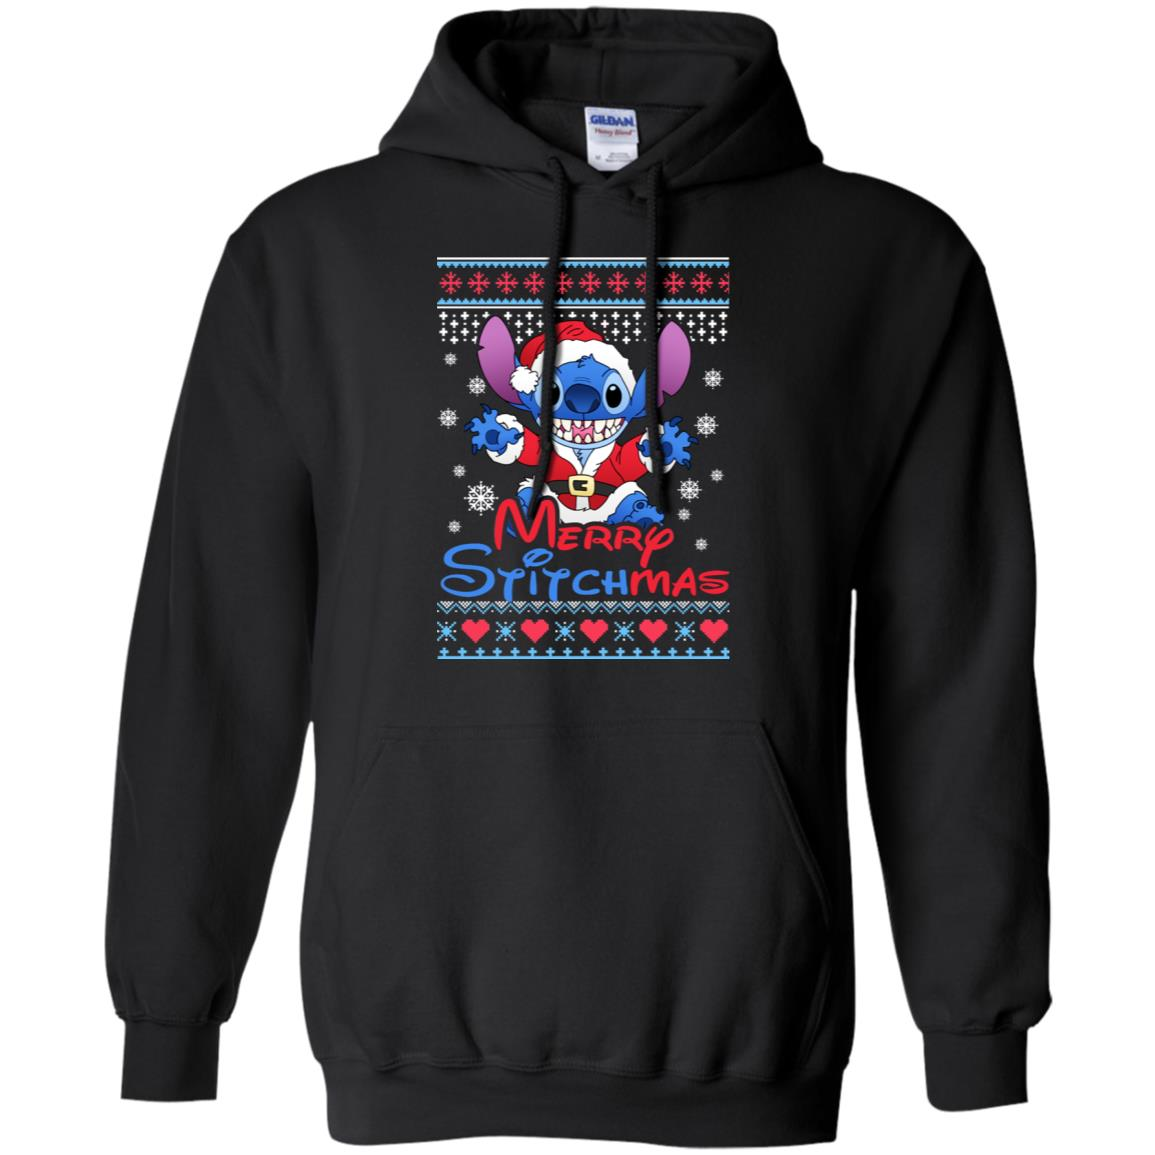 Merry Stitchmas Ugly Christmas Sweater